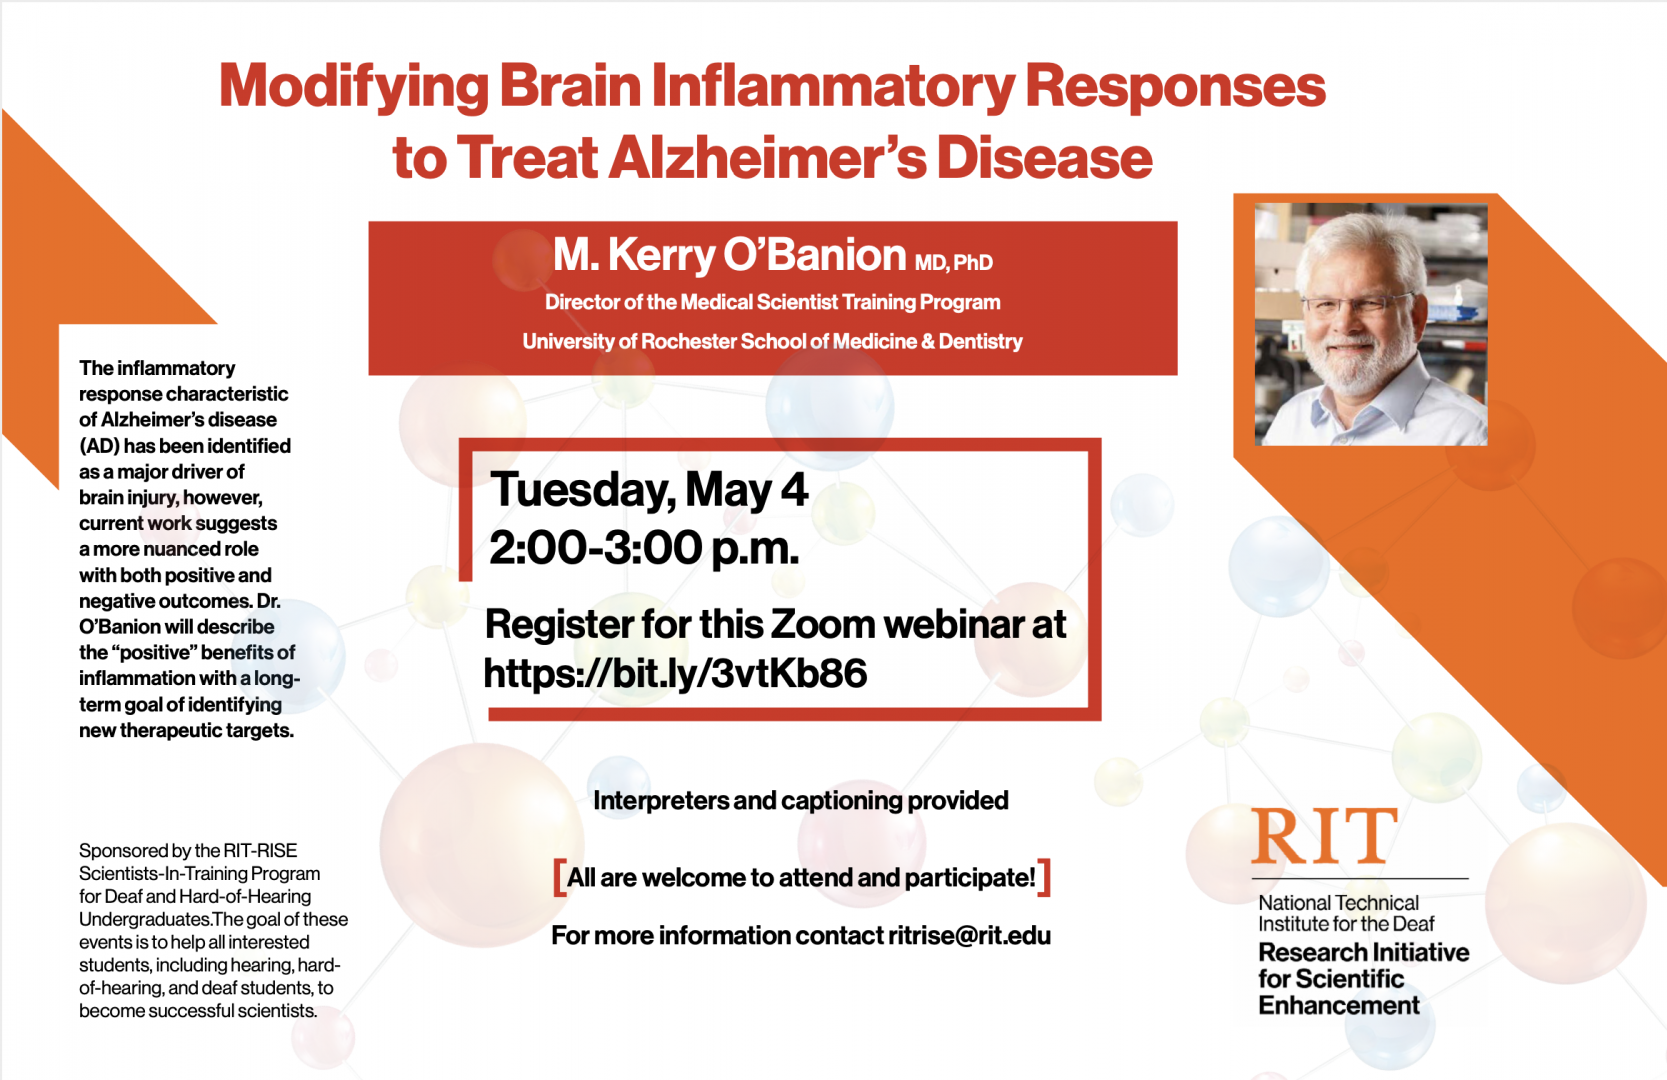 """Modifying Brain Inflammatory Responses to Treat Alzheimer's Disease"" presented by Dr. M. Kerry O'Banion. Interpreters and captioning provided. All are welcome to attend and participate! Tuesday, May 4th from 2:00-3:00pm. Register for this Zoom webinar at https://rit.zoom.us/webinar/register/WN_HD8qVcXmTFmtoYUzRLxaQg  For more information contact ritrise@rit.edu"